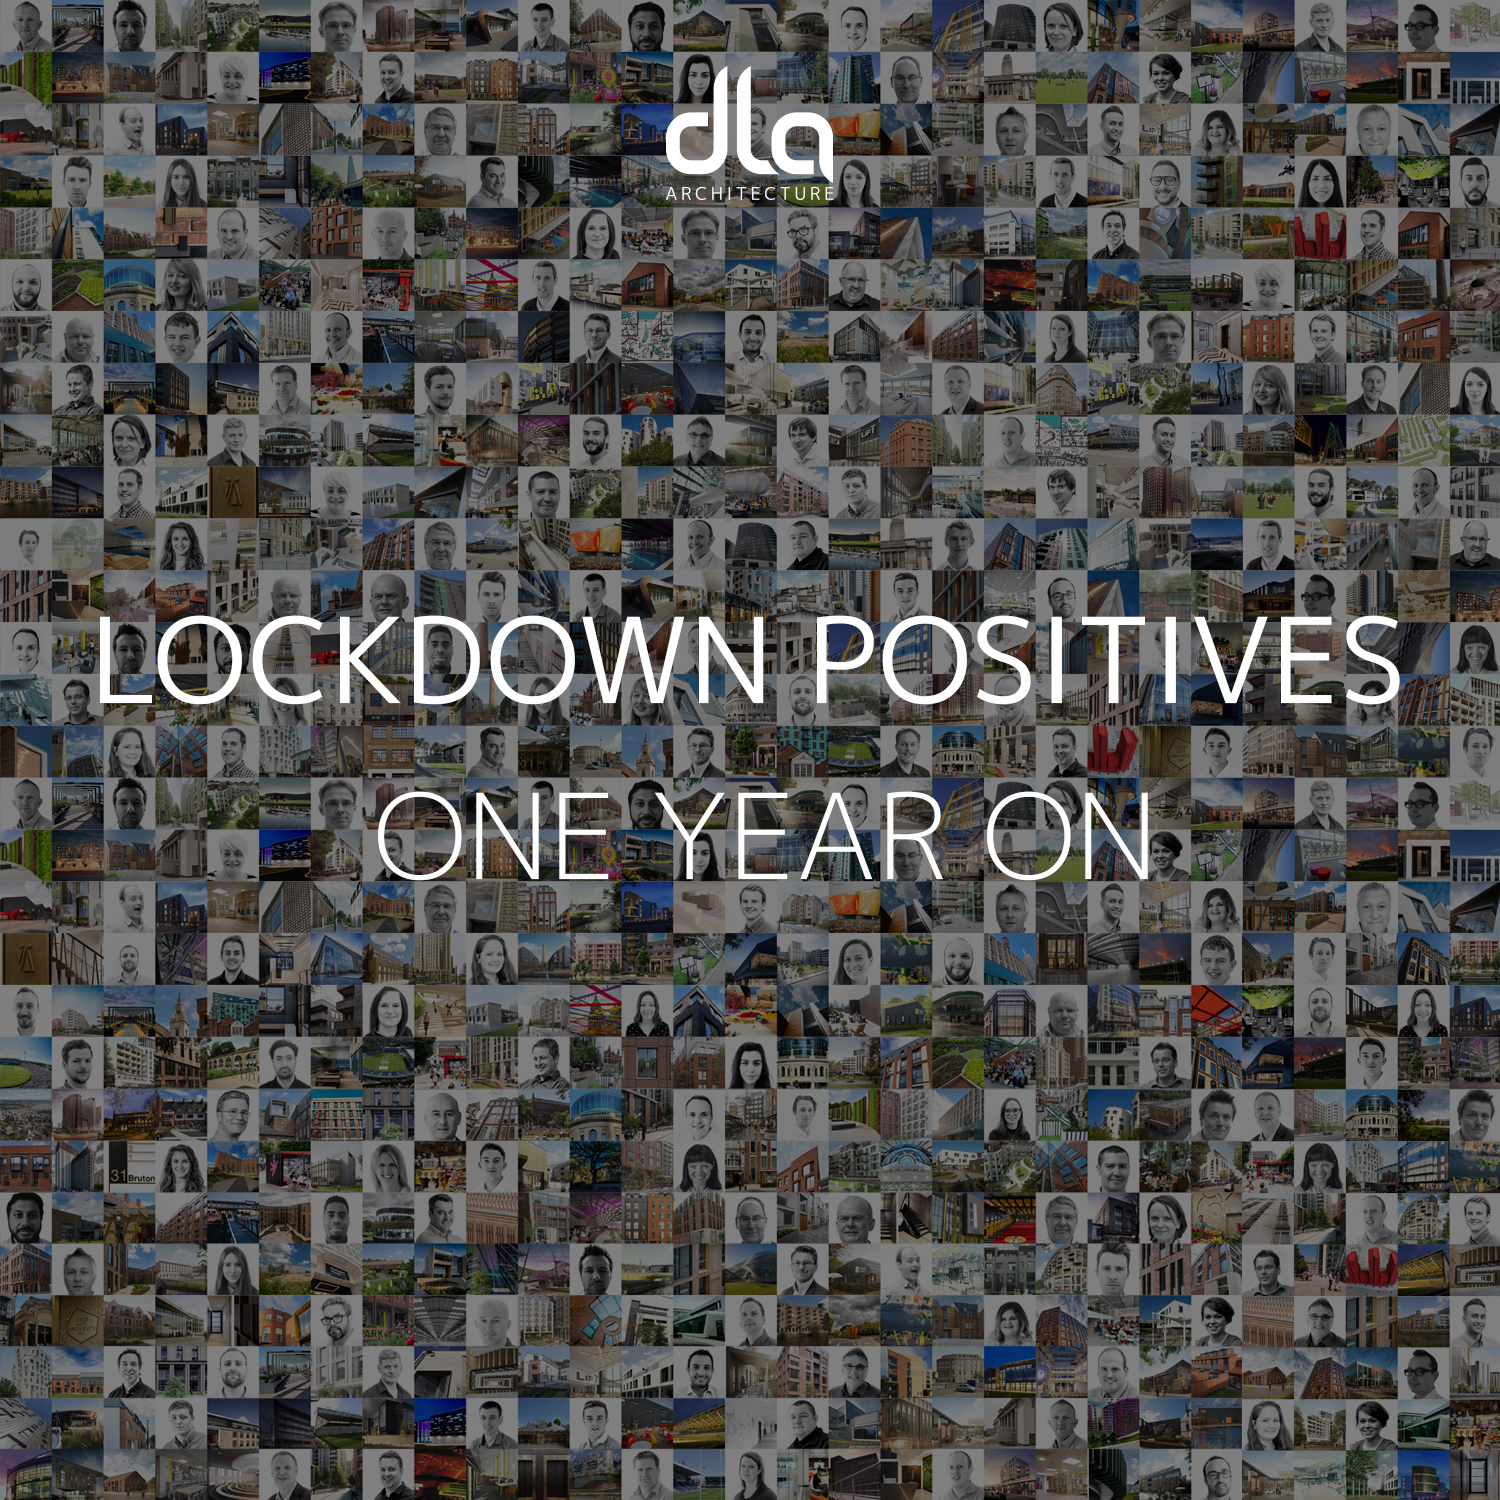 Lockdown positives, one year on